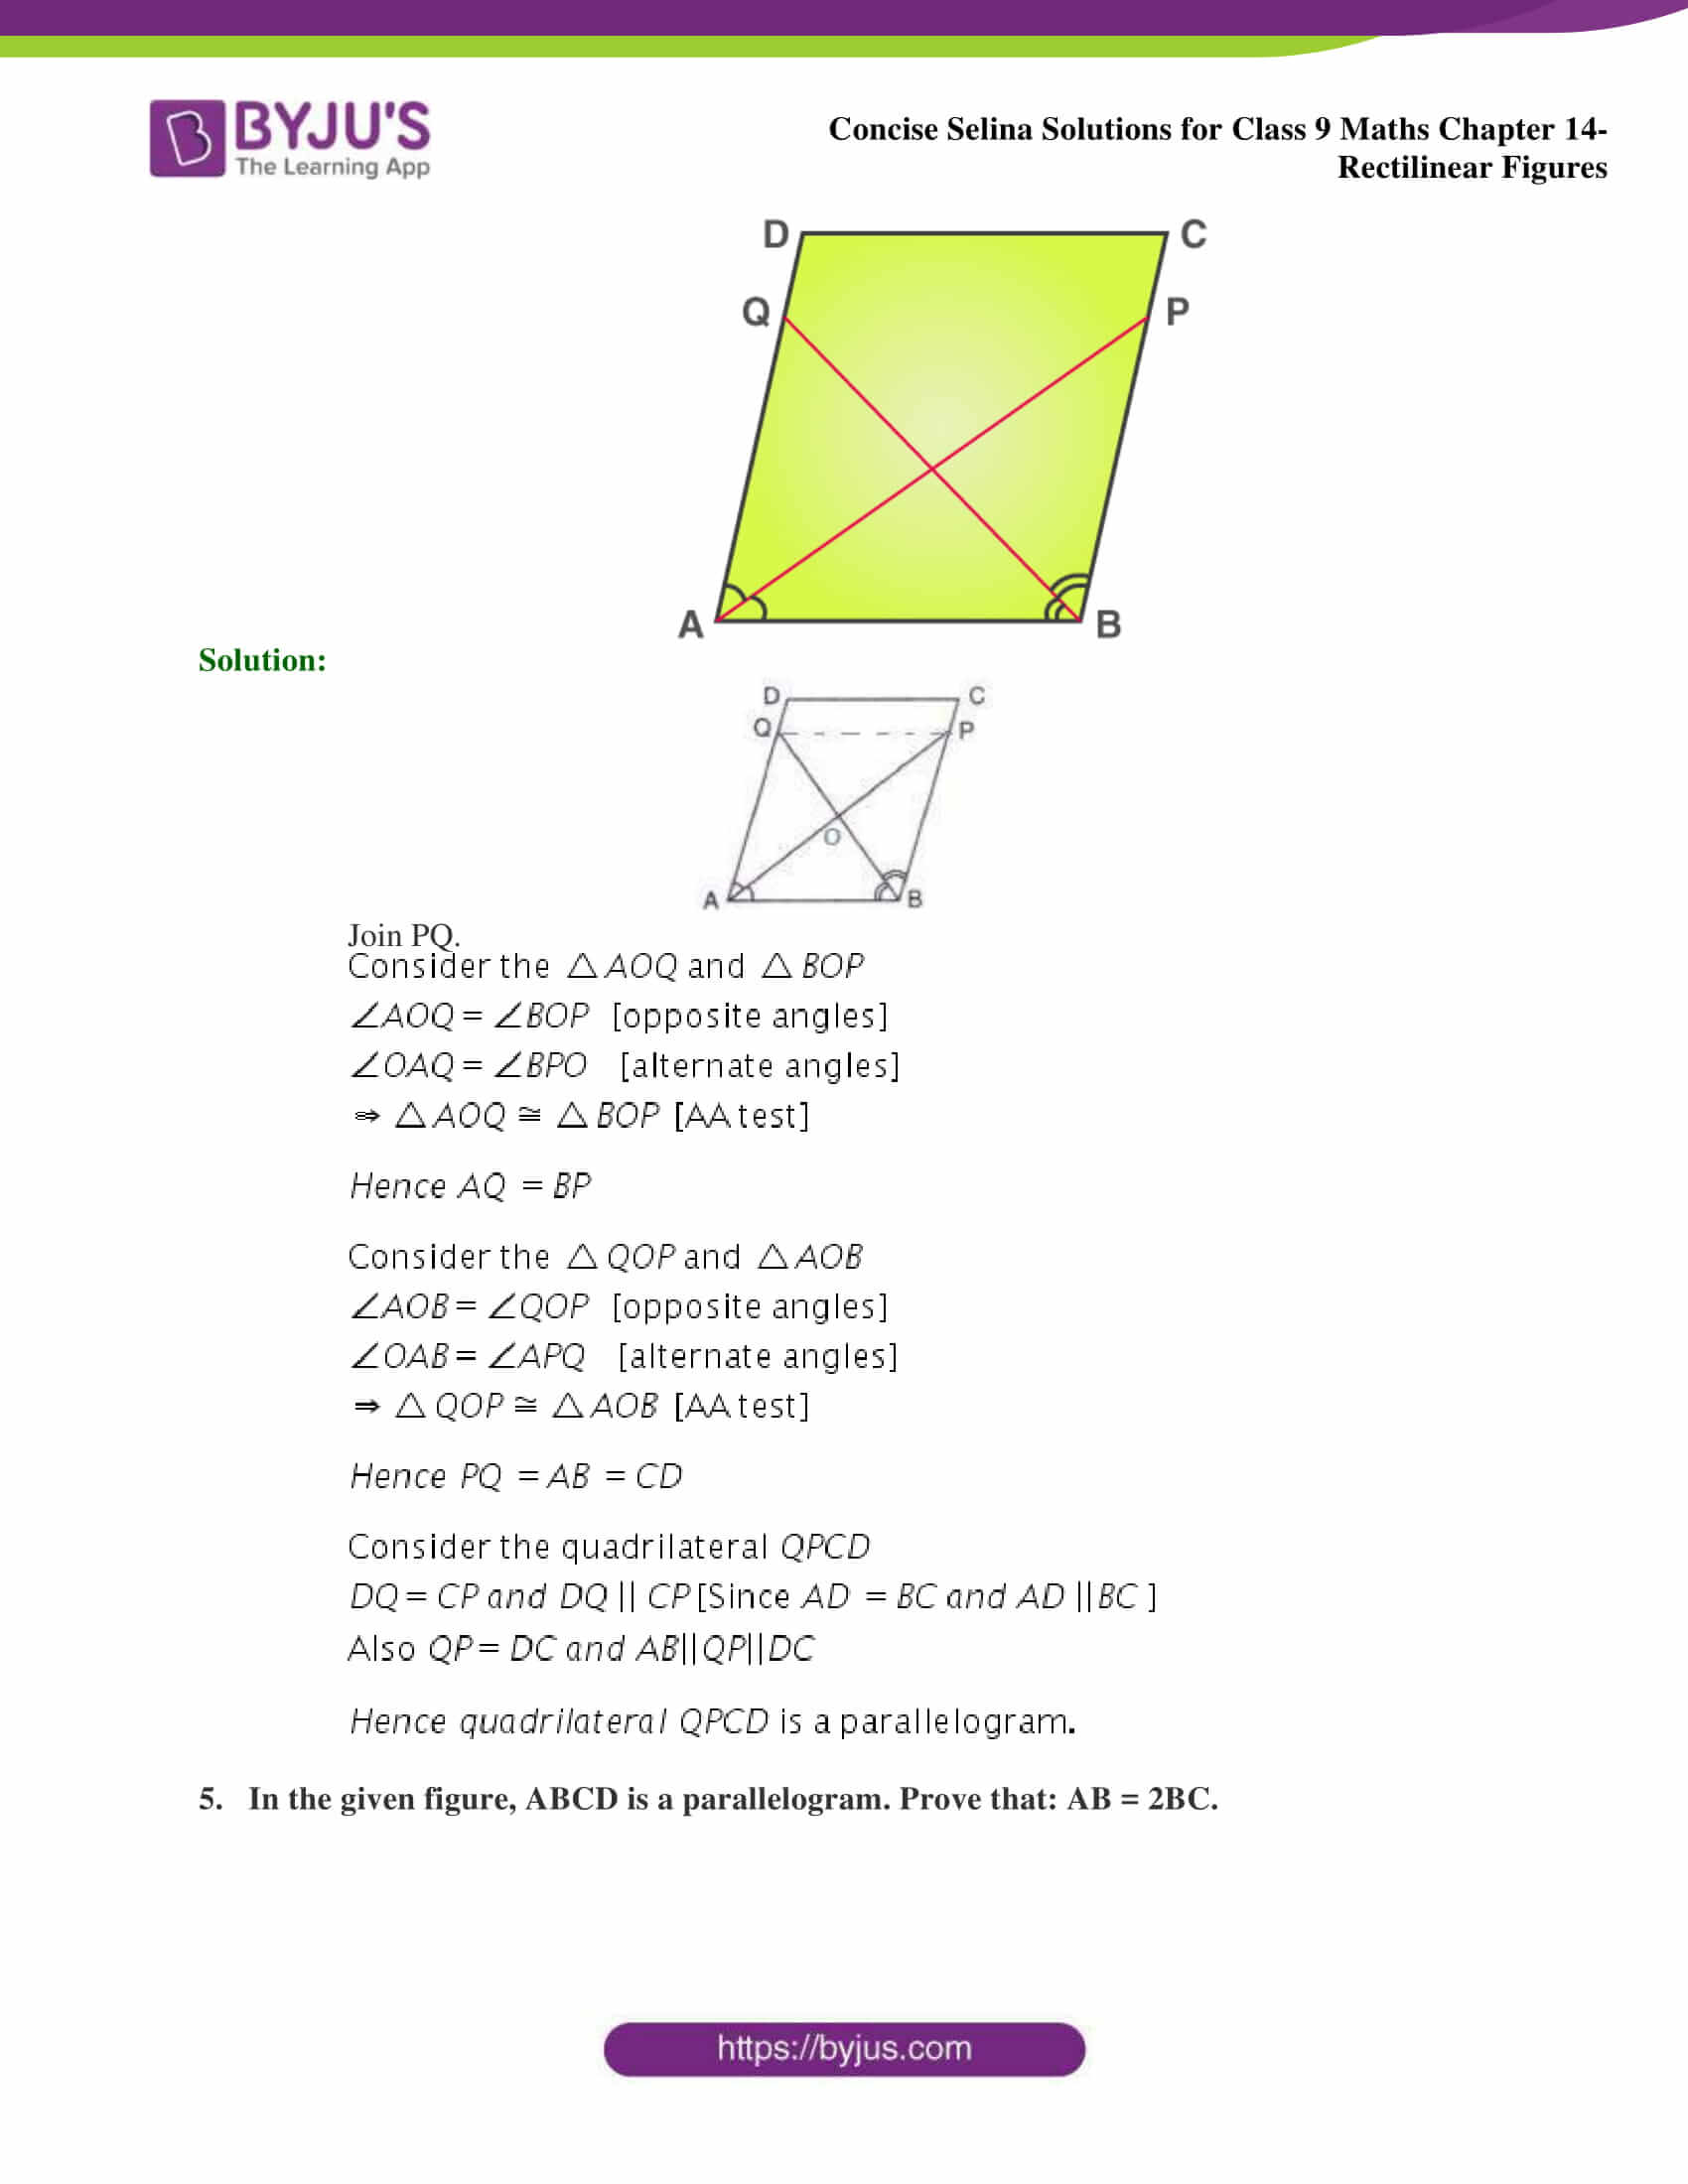 selina Solutions for Class 9 Maths Chapter 14 part 20